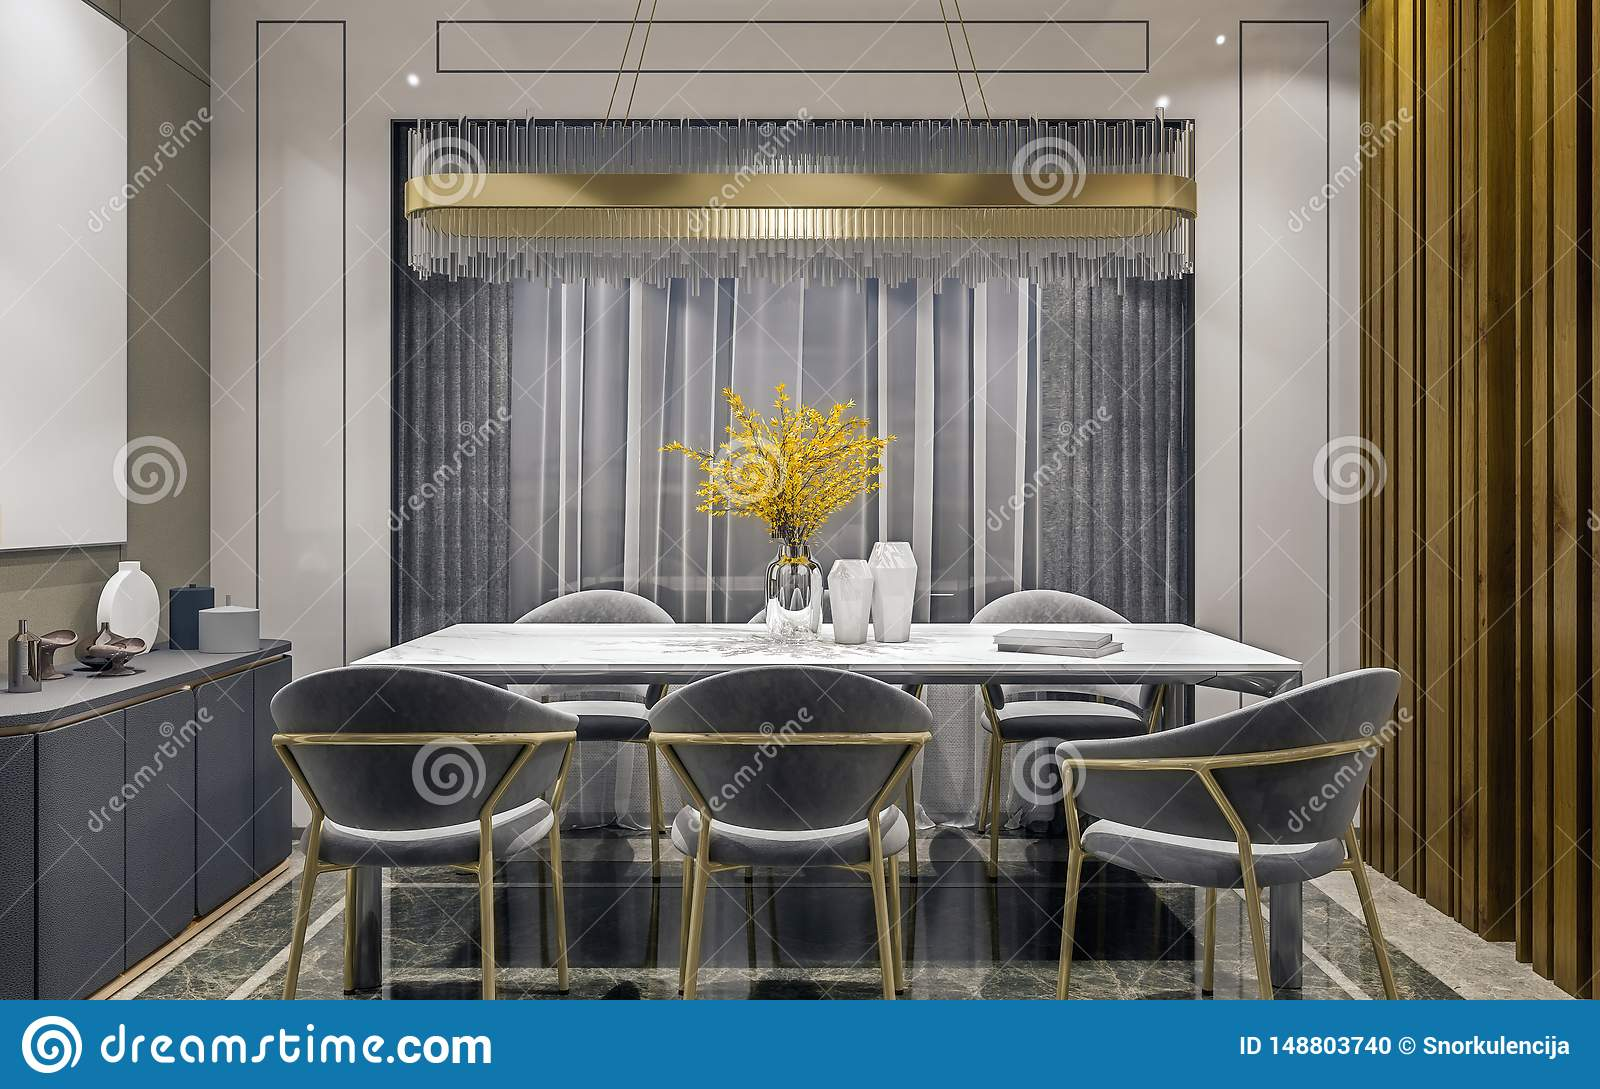 Modern Interior Design Of Grey Gold Dining Room With Side Console And Wooden Slabs Wall Dark And Moody Night Scene Stock Photo Image Of Interior Frame 148803740